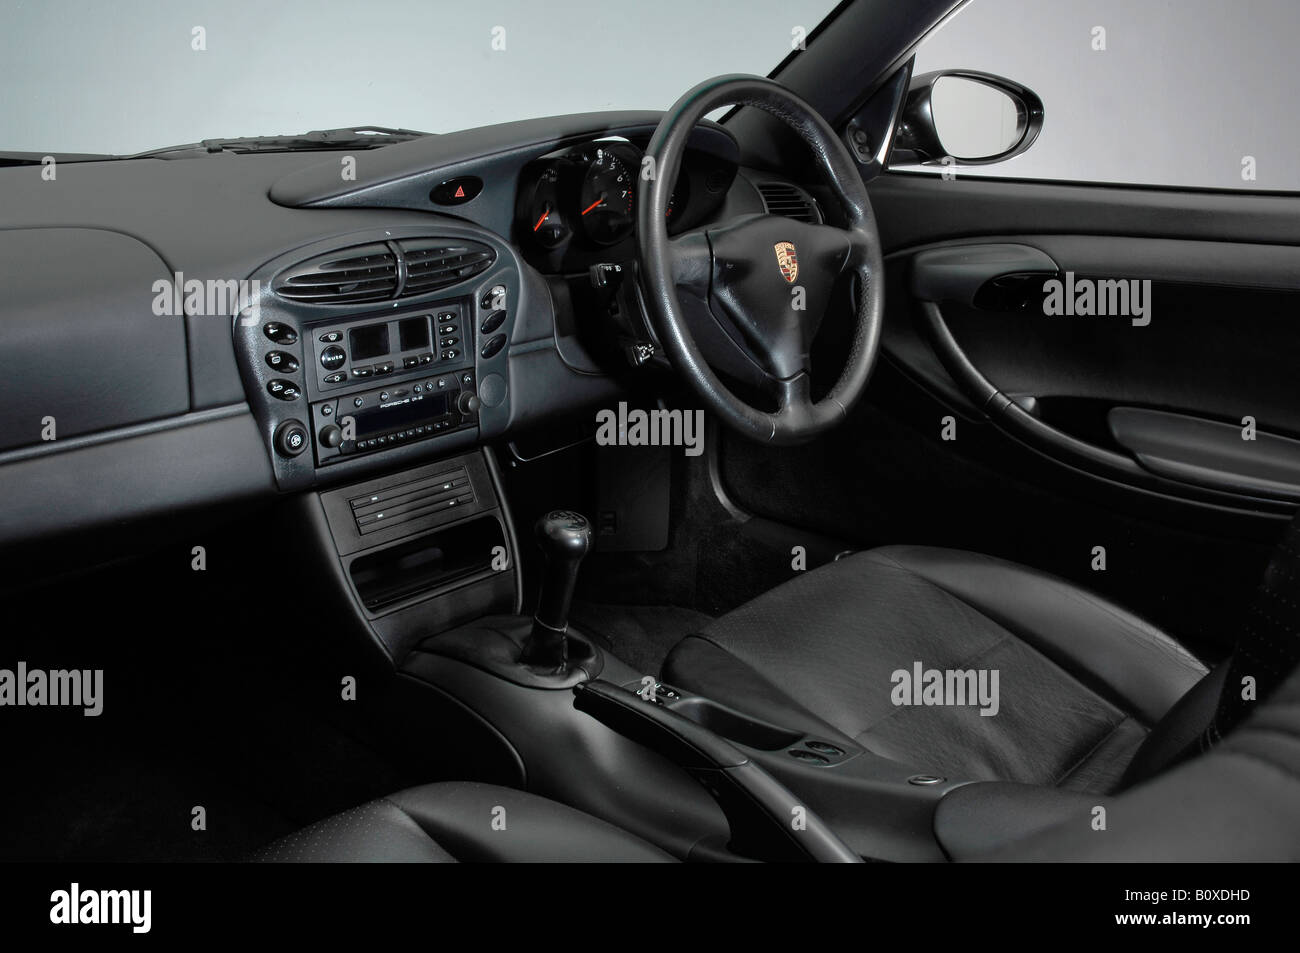 Interior Of 1999 Porsche Boxster Stock Photo Alamy